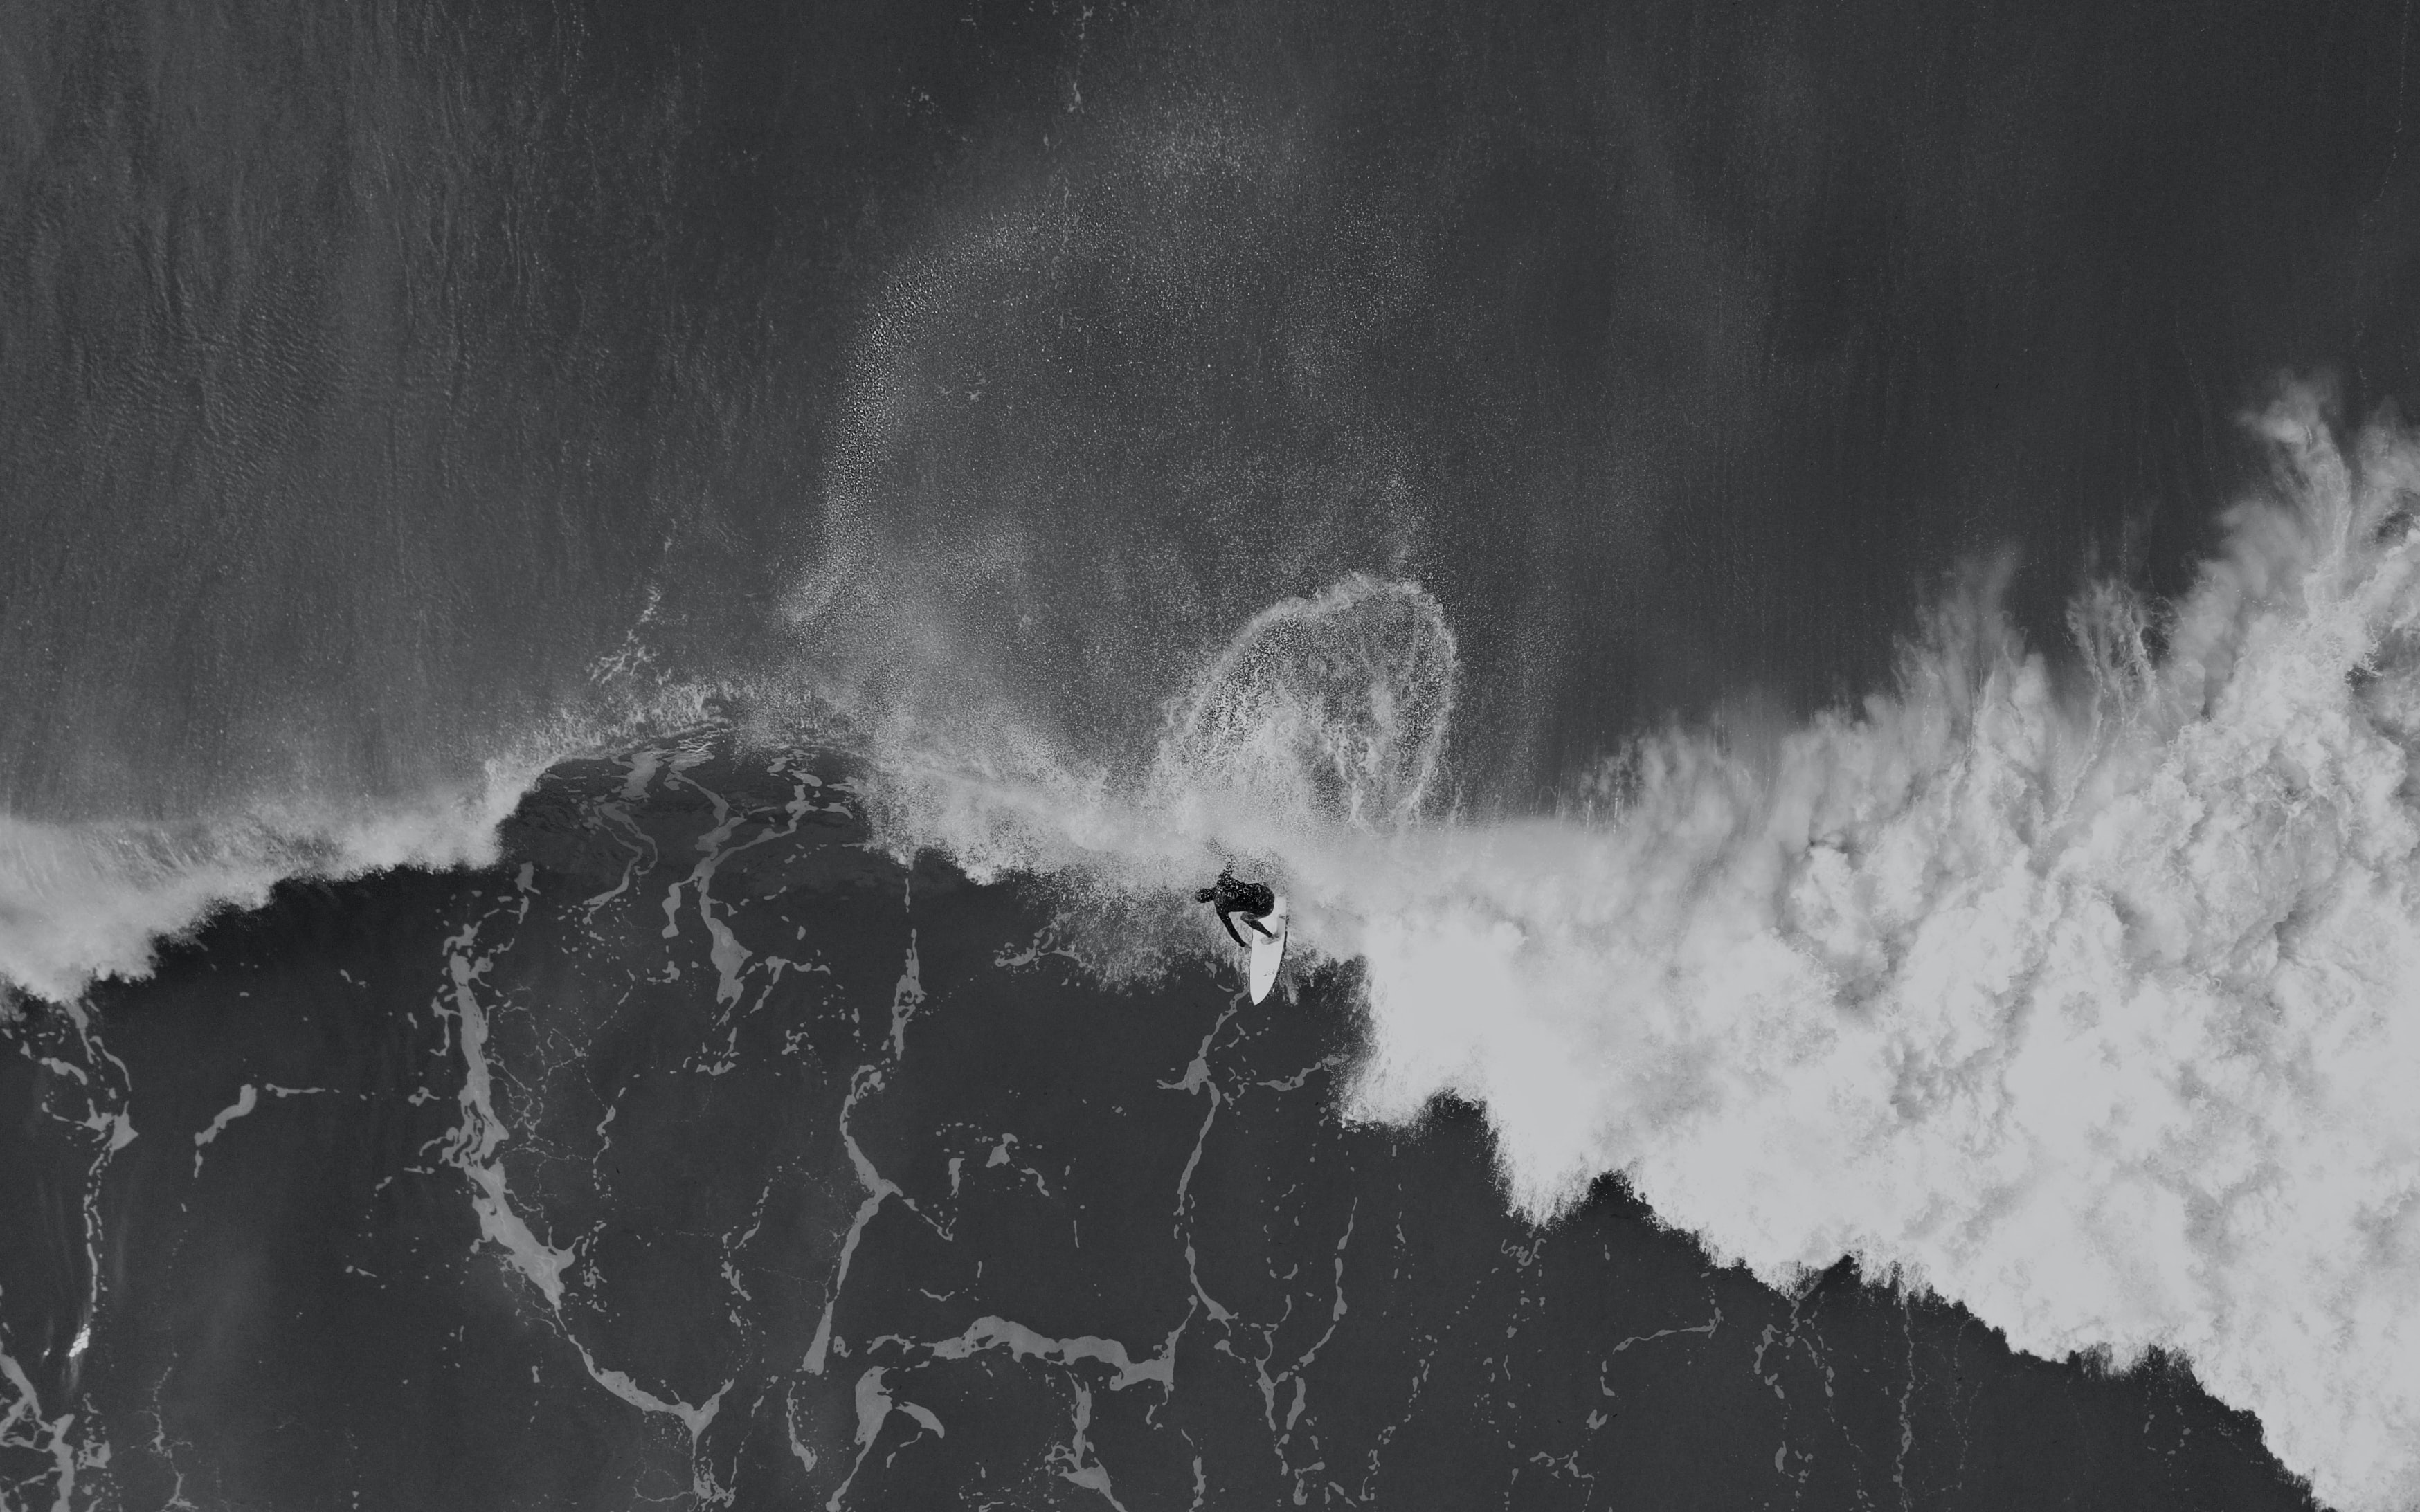 An overhead drone shot of a surfer in the foaming sea at Gisborne, New Zealand